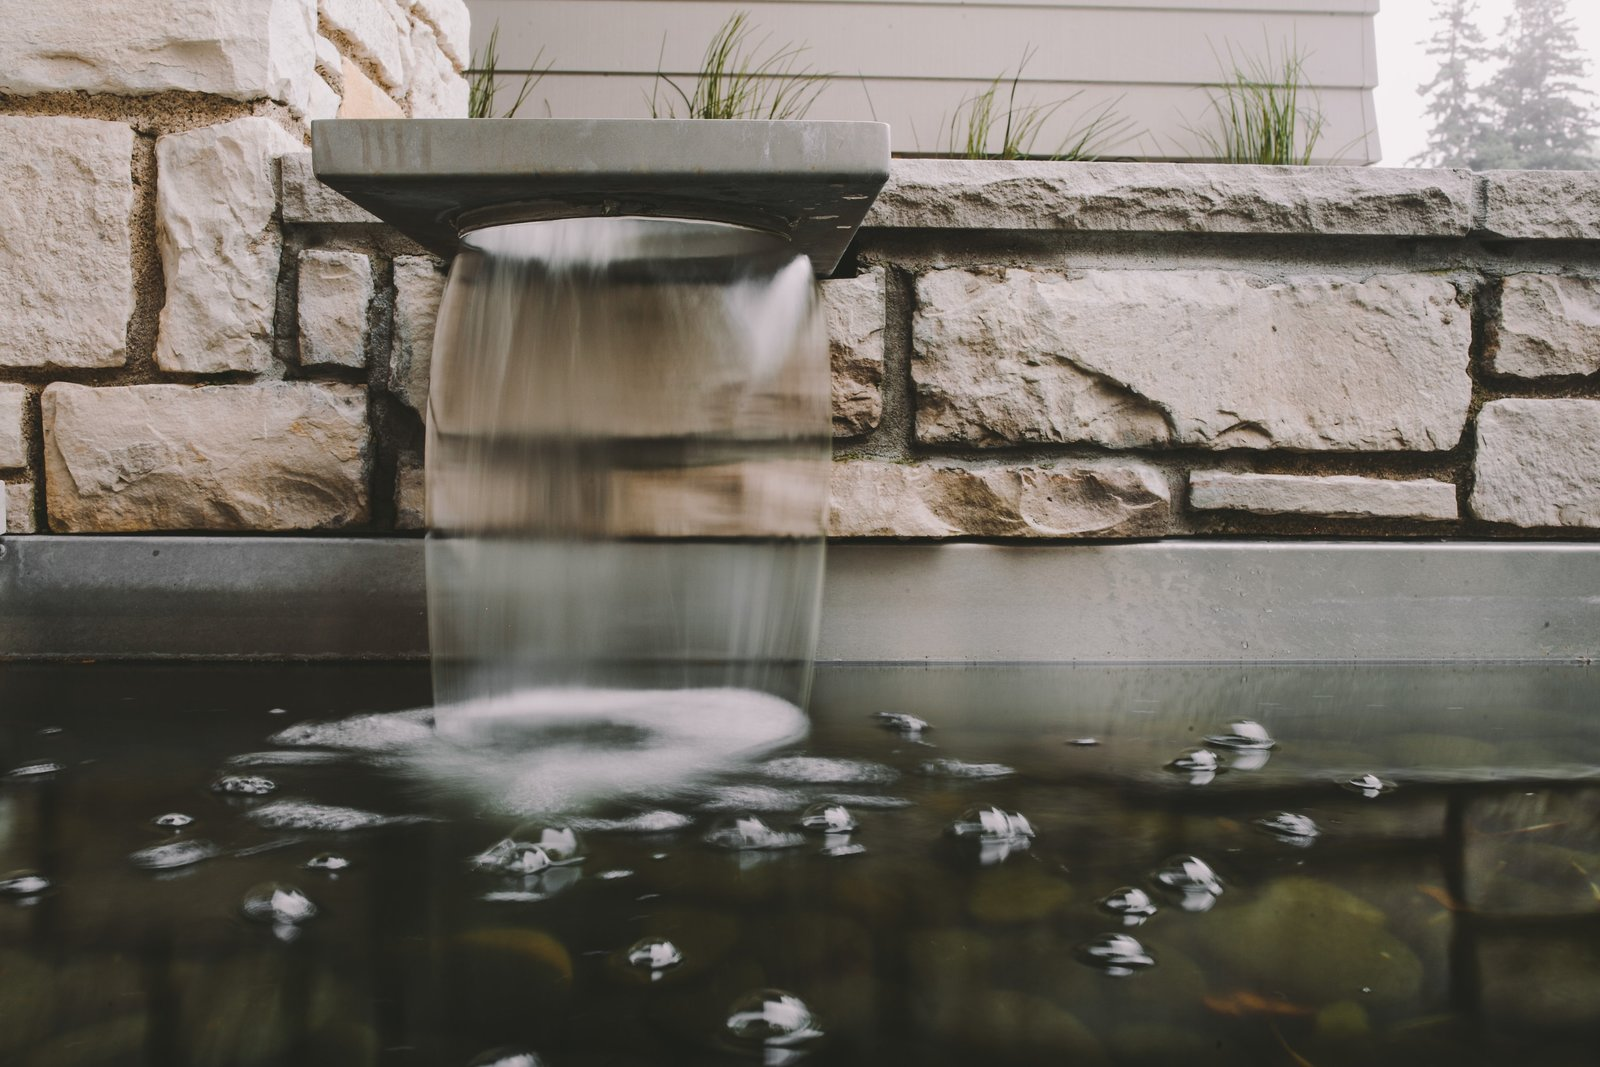 Crisp integration of Mid-century details and this modern fountain